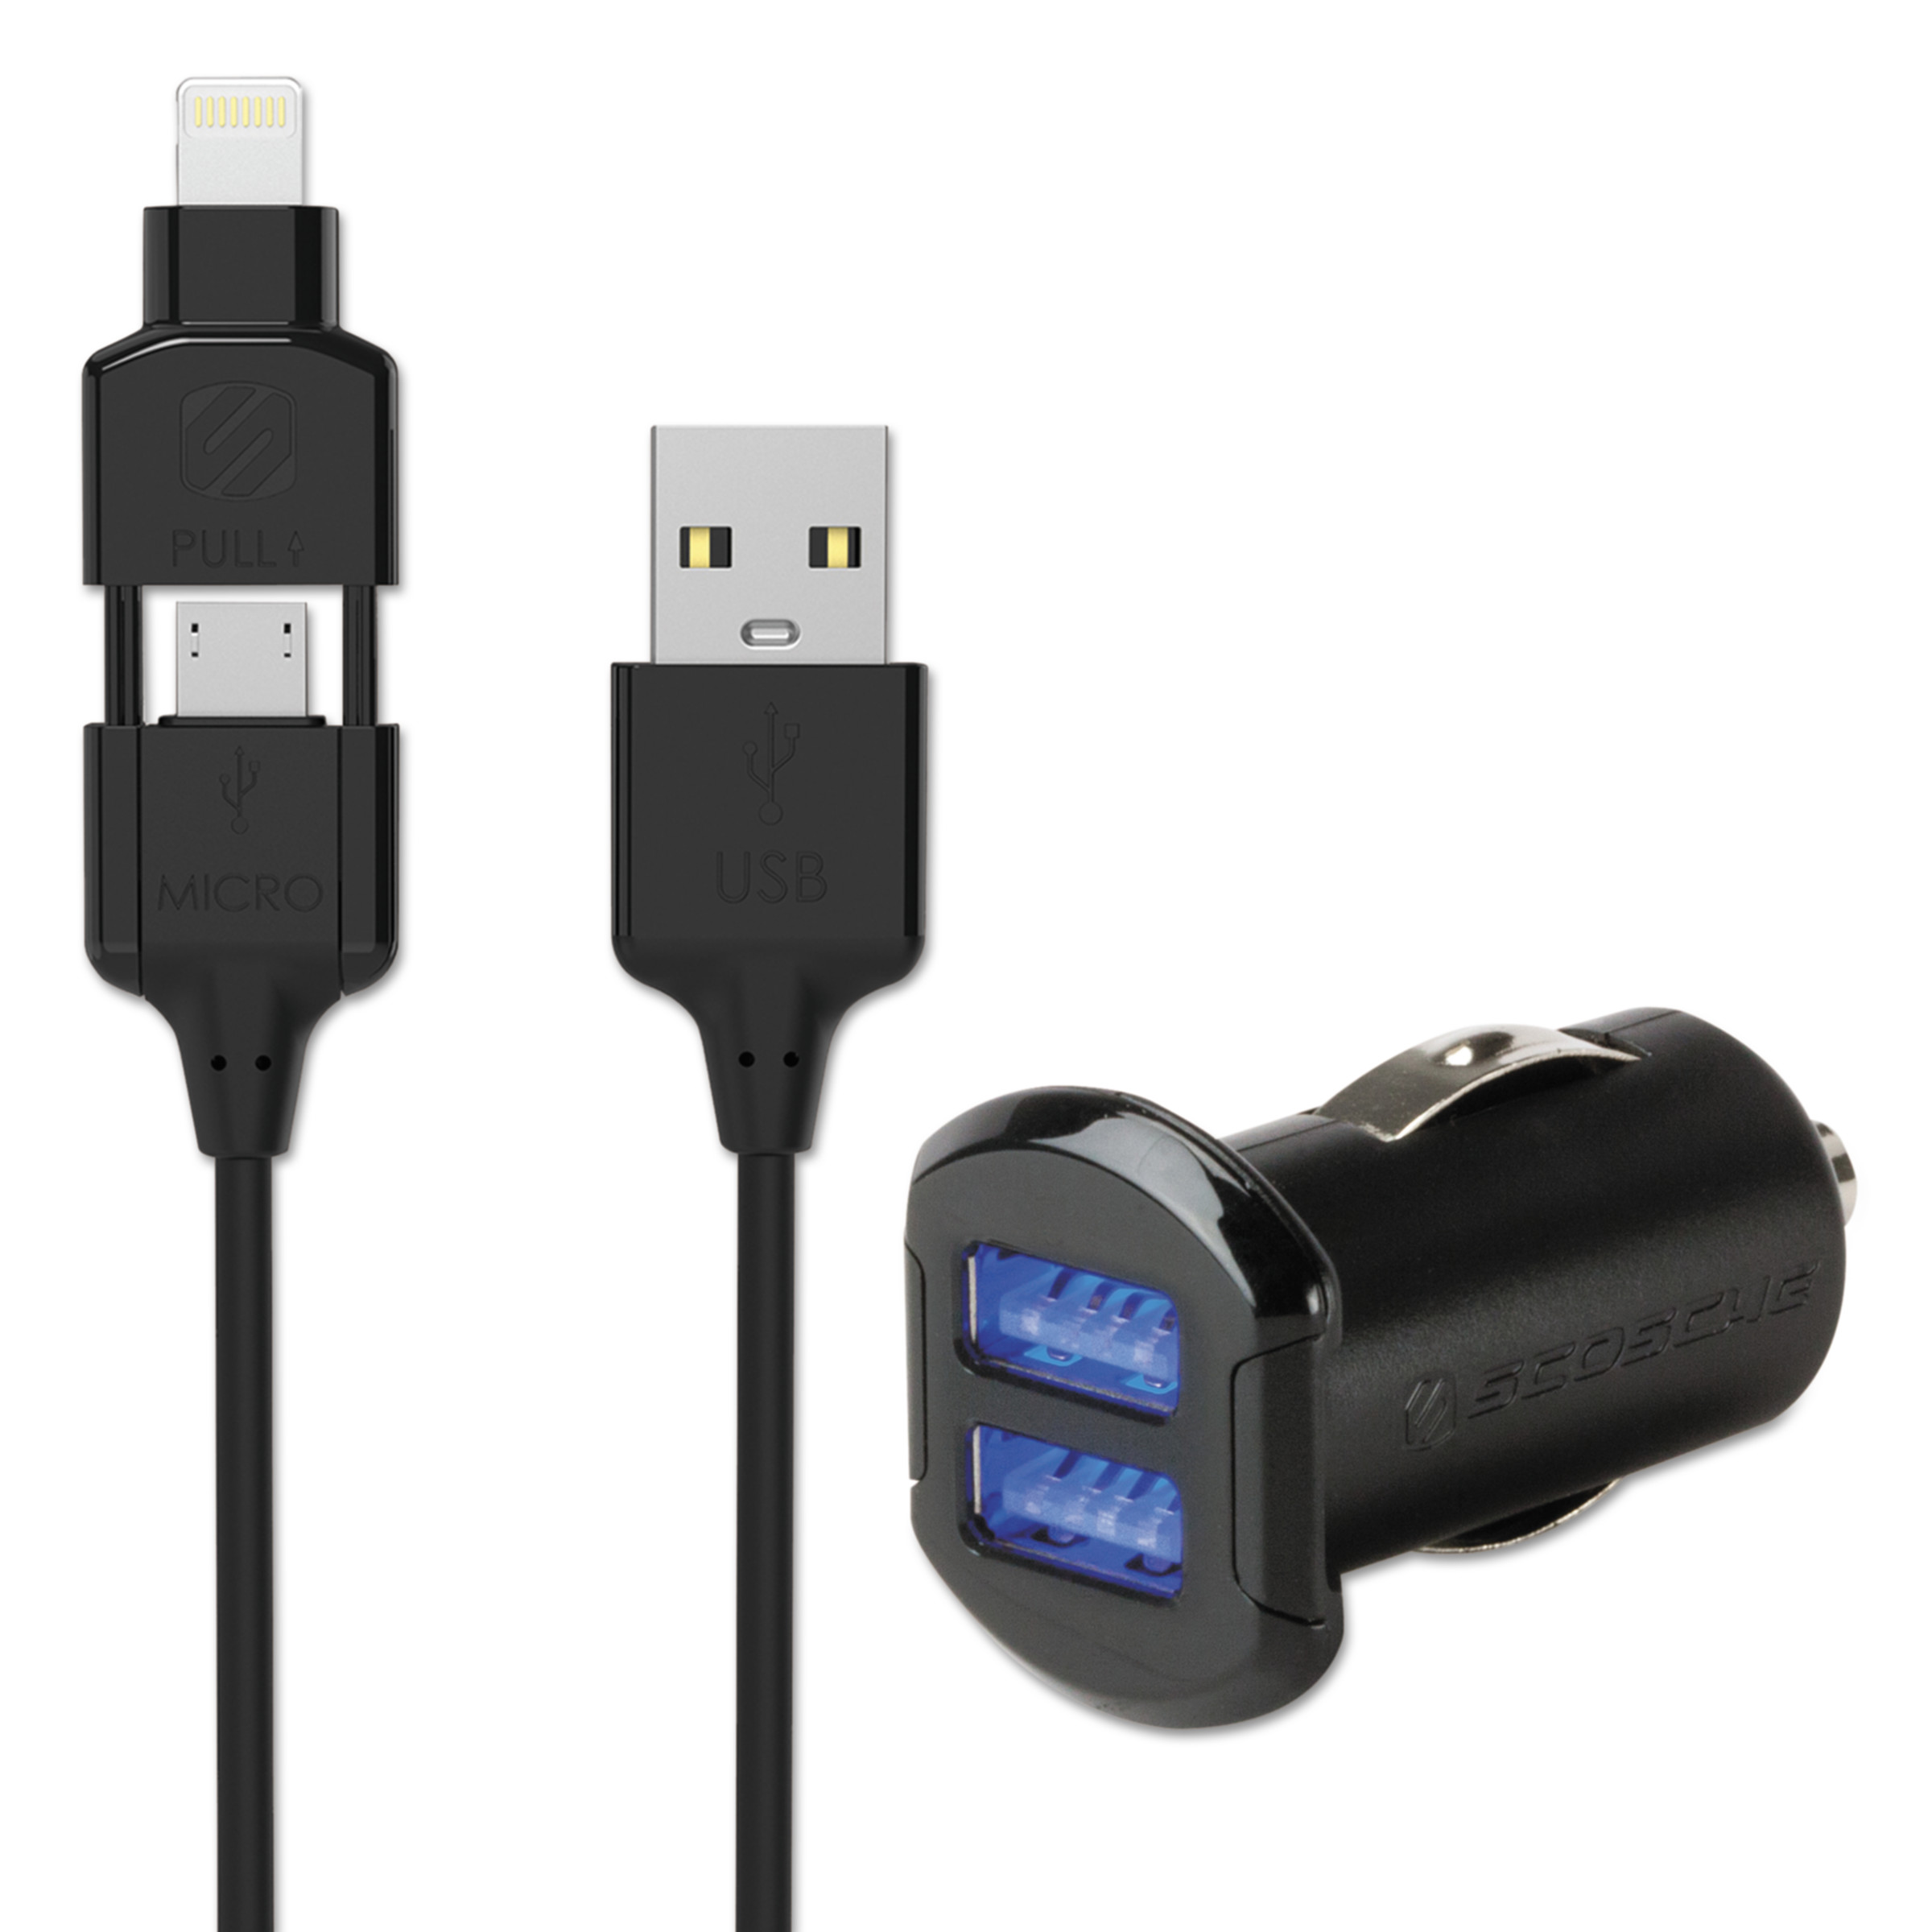 SCOSCHE I3MC242M Lightning and Micro-USB 2 in 1 Charge and Sync Cable with Dual 12W USB Car Charger